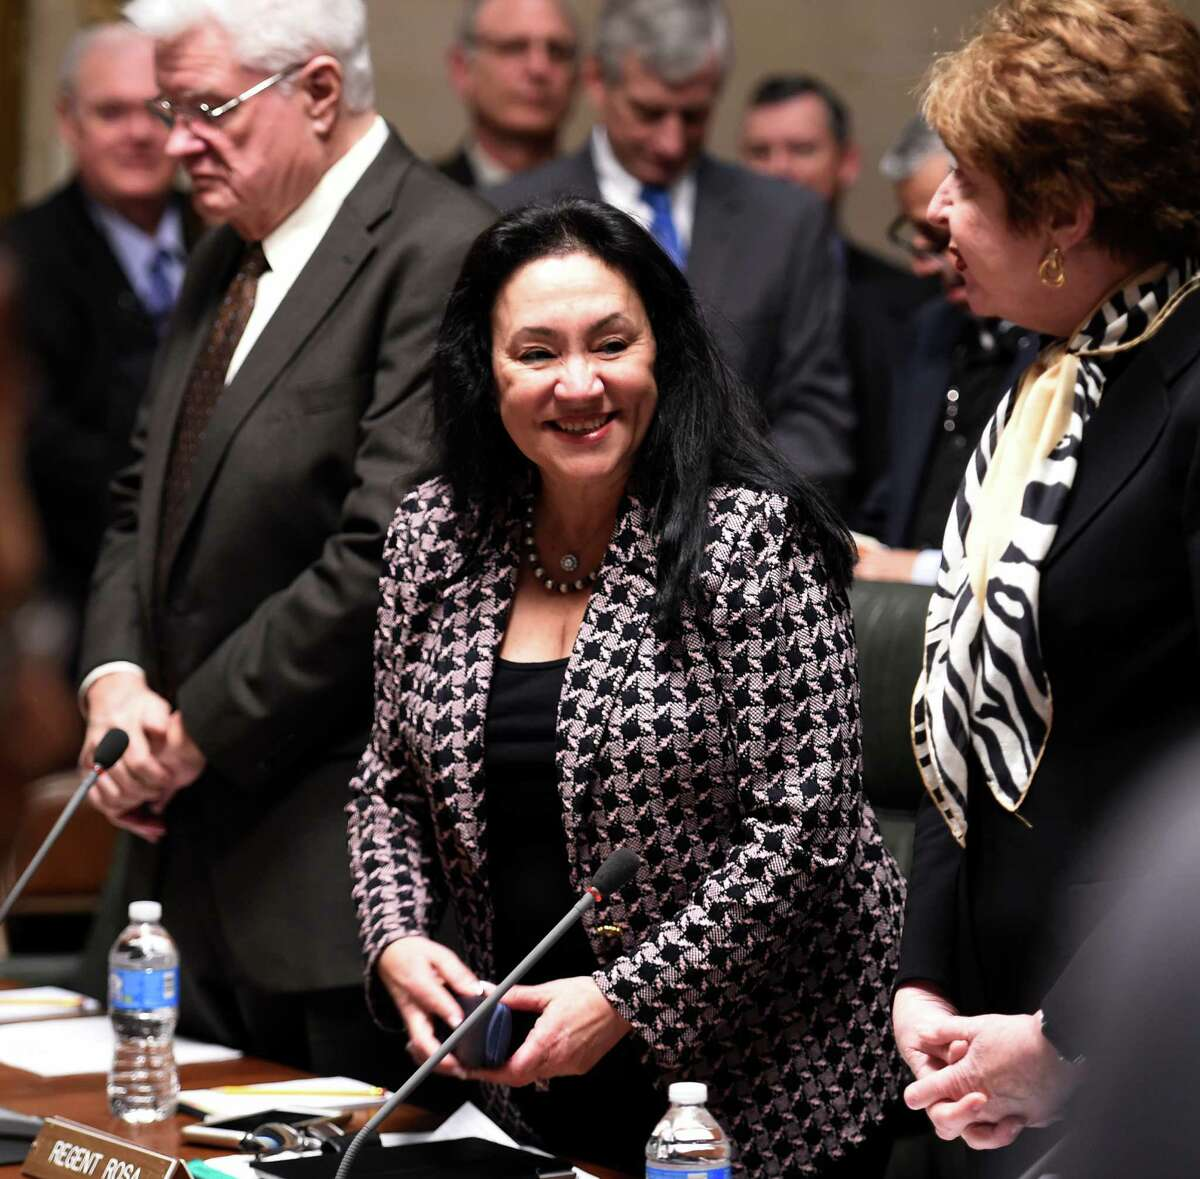 Betty Rosa, center, reacts after being named Chancellor elect of the New York State Board of Regents during meeting held on Monday, March 21, 2016, at the Education Department building in Albany, N.Y. Rosa will take office on April 1st replacing Merryl H. Tisch. (Skip Dickstein/Times Union)